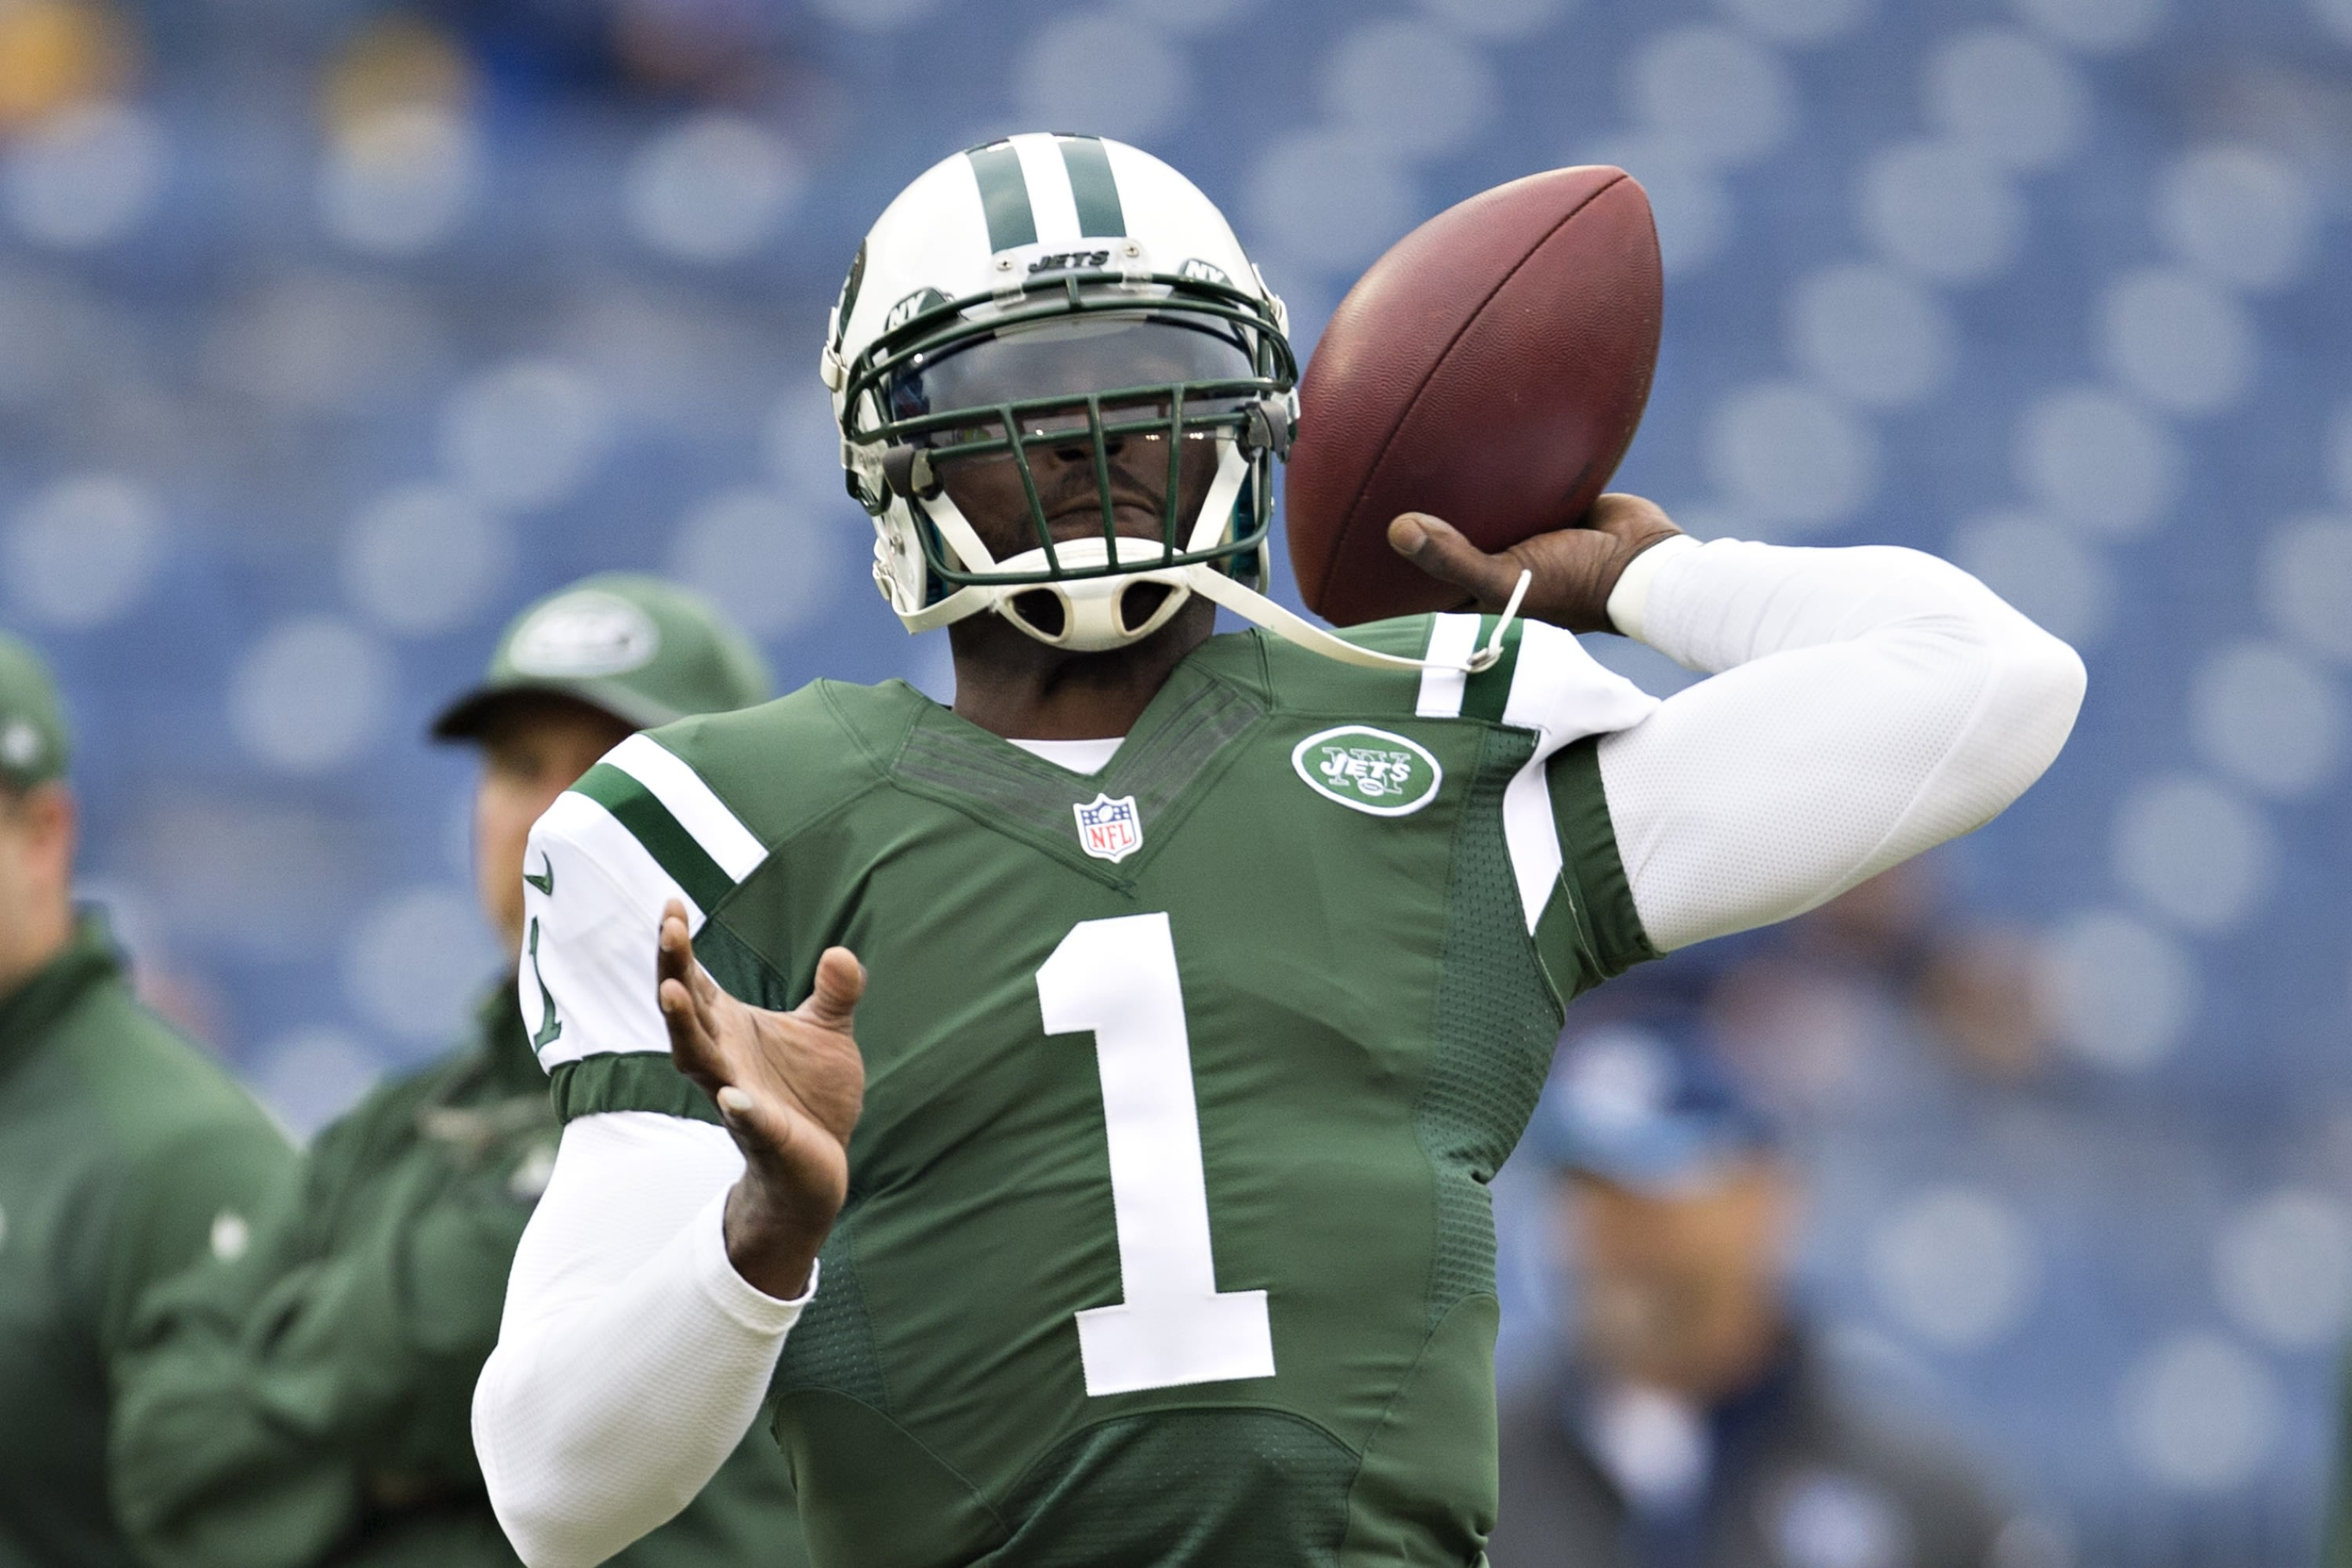 NASHVILLE, TN - DECEMBER 14: Michael Vick #1 of the New York Jets warming up before a game against the Tennessee Titans at LP Field on December 14, 2014 in Nashville, Tennessee. (Photo by Wesley Hitt/Getty Images)